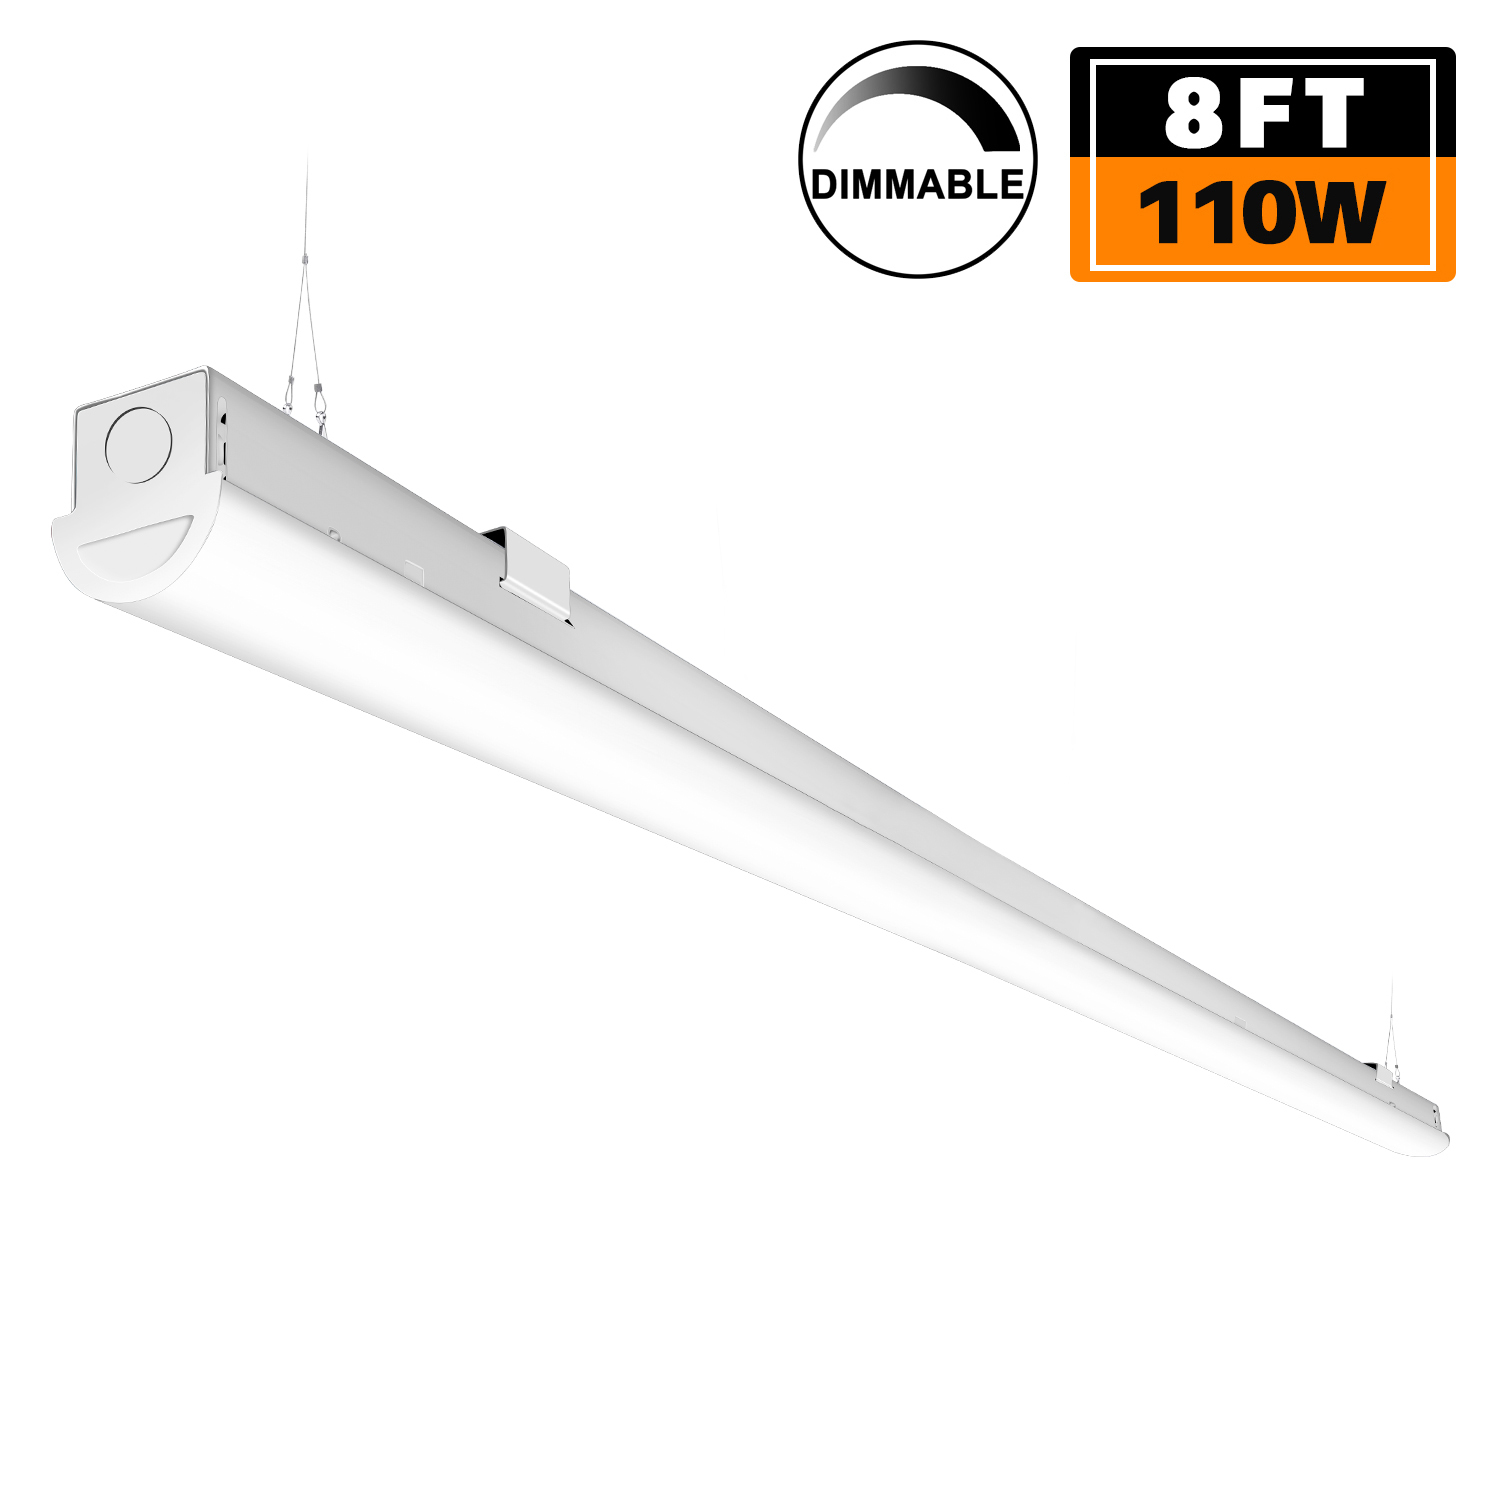 Details About Dimmable 110w Led Strip Lights 8ft Linkable Linear Garage Light 12500lm